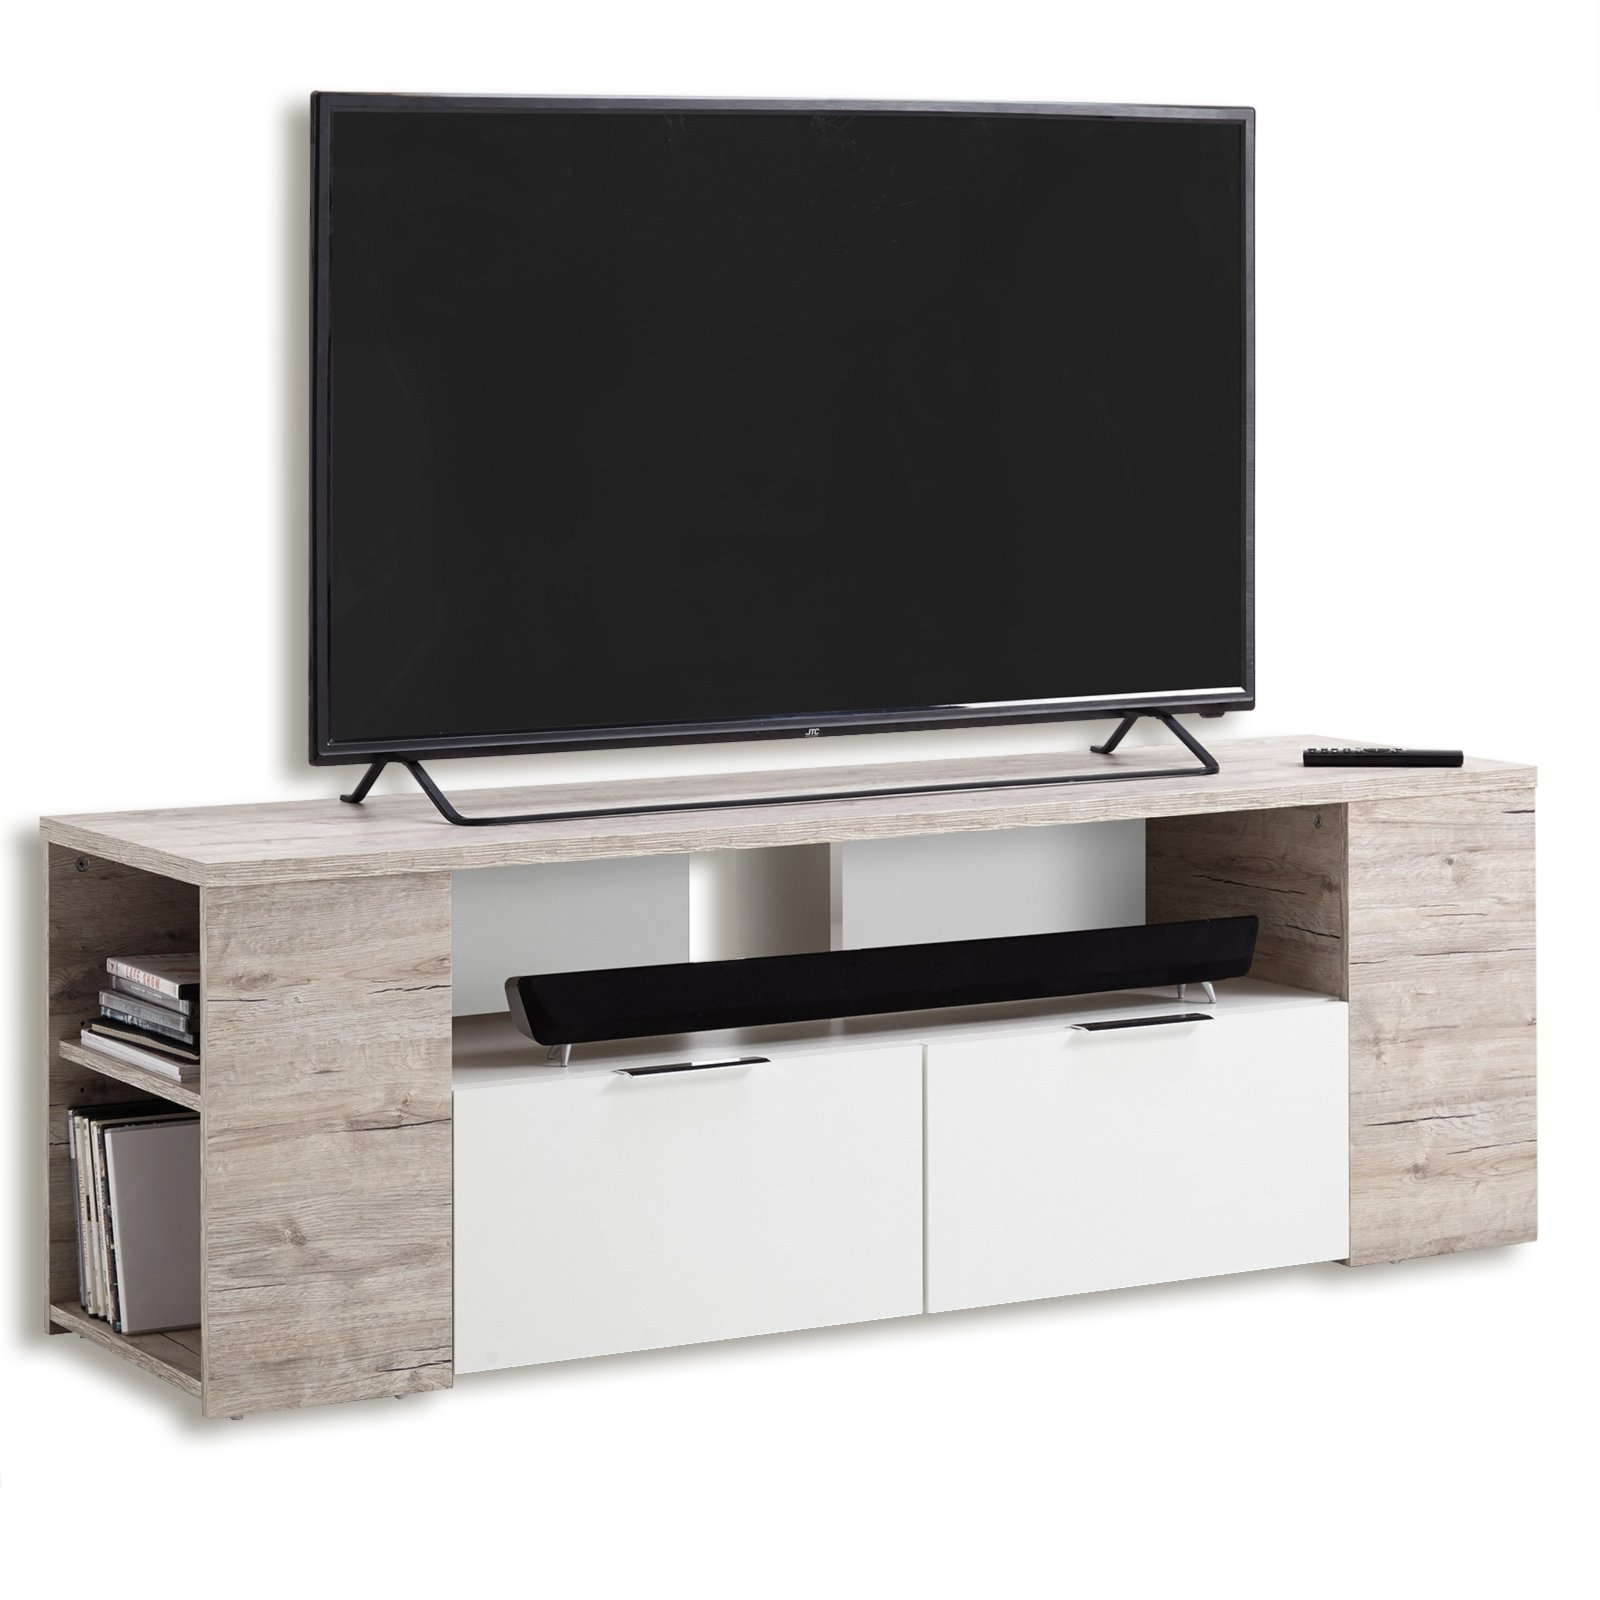 tv lowboard tabor sandeiche wei 150 cm tv lowboards tv b nke tv hifi m bel m bel. Black Bedroom Furniture Sets. Home Design Ideas